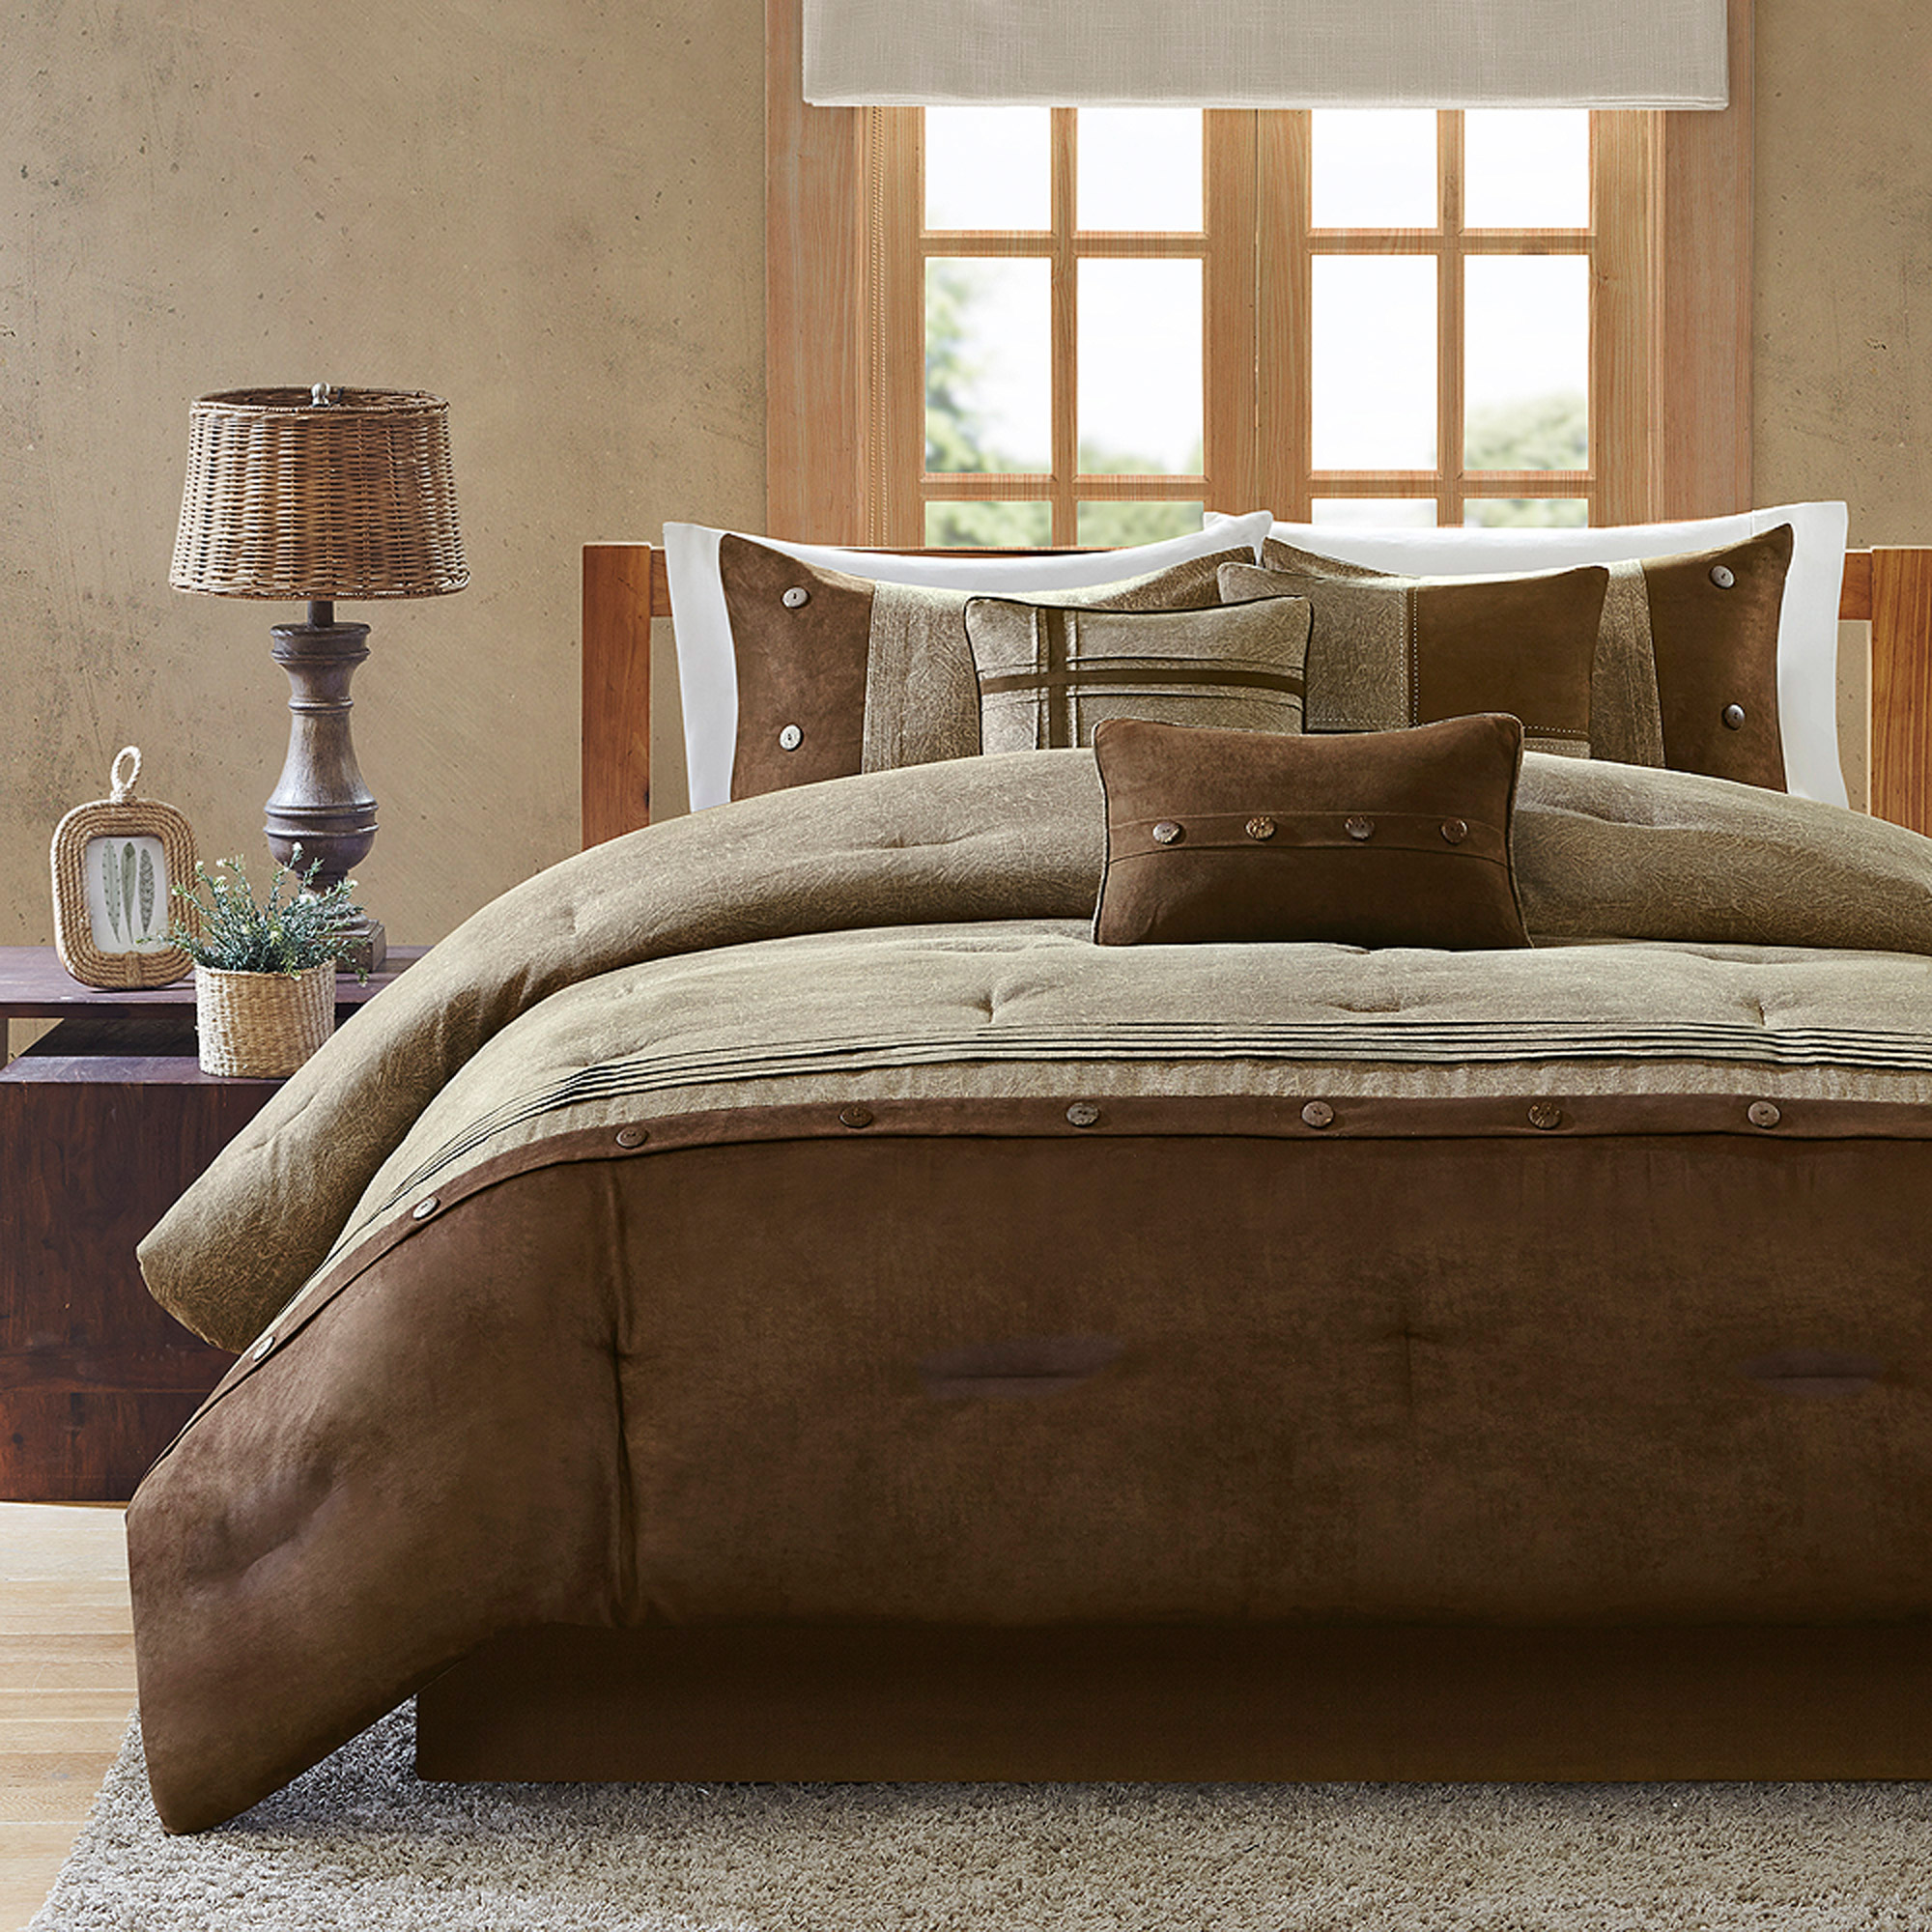 regard set comforters comforter sets to household place bedding throughout del turquoise cabin bed southwest chamarro rio from with architecture renovation southwestern